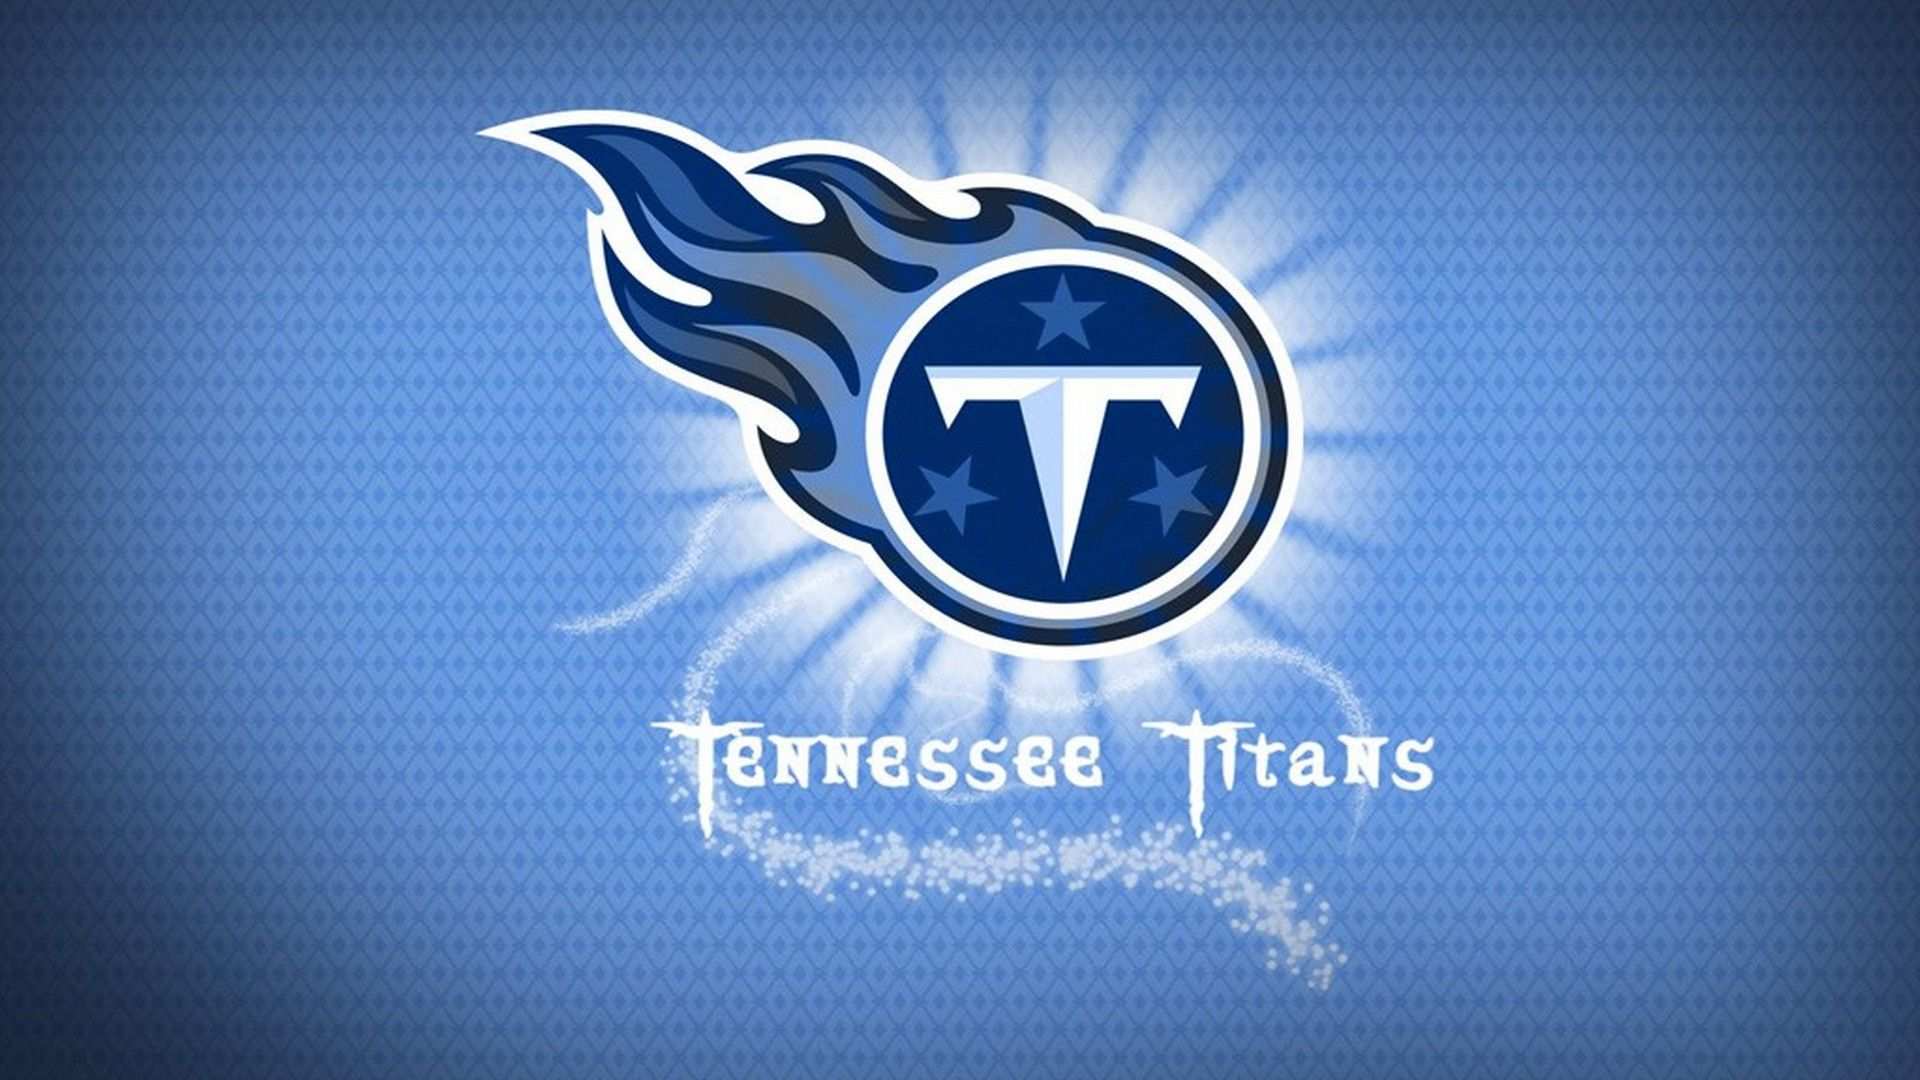 Tennessee Titans Mac Backgrounds Tennessee titans logo